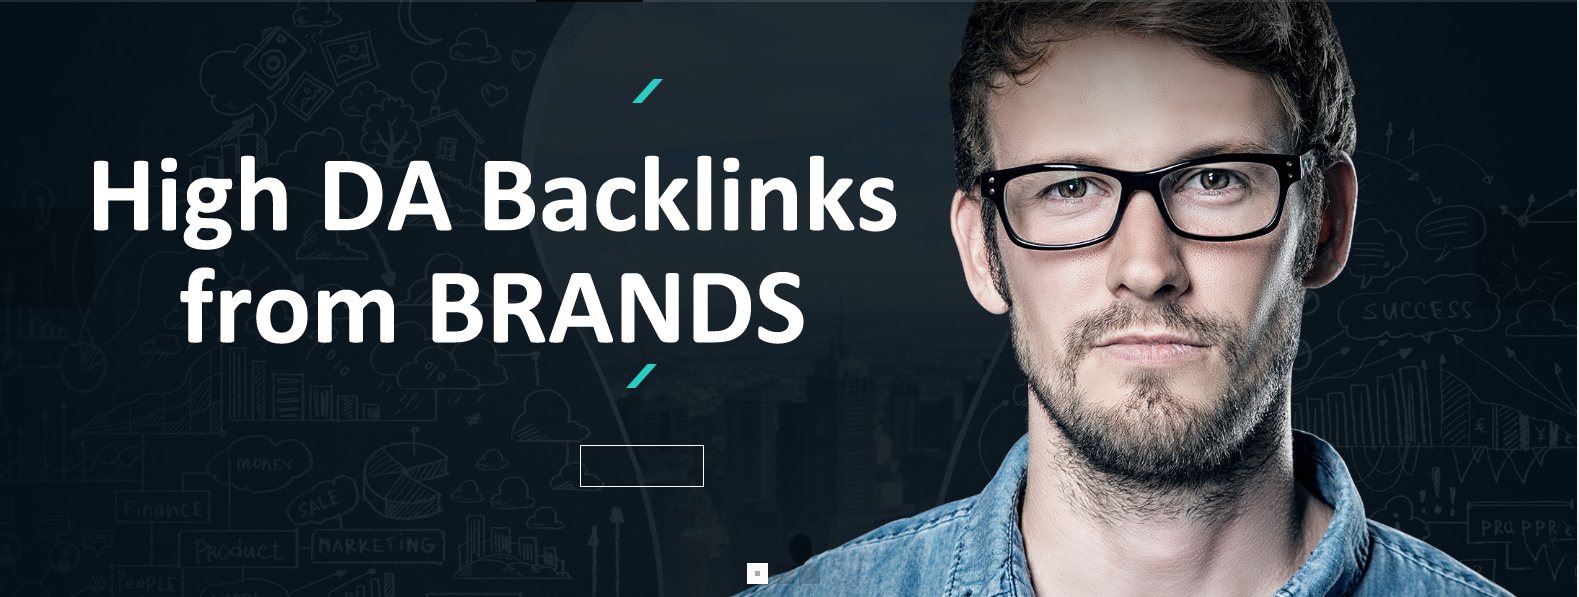 BEST backlinks from Branded Websites - ultra high domain authority - get top google rankings in 2020